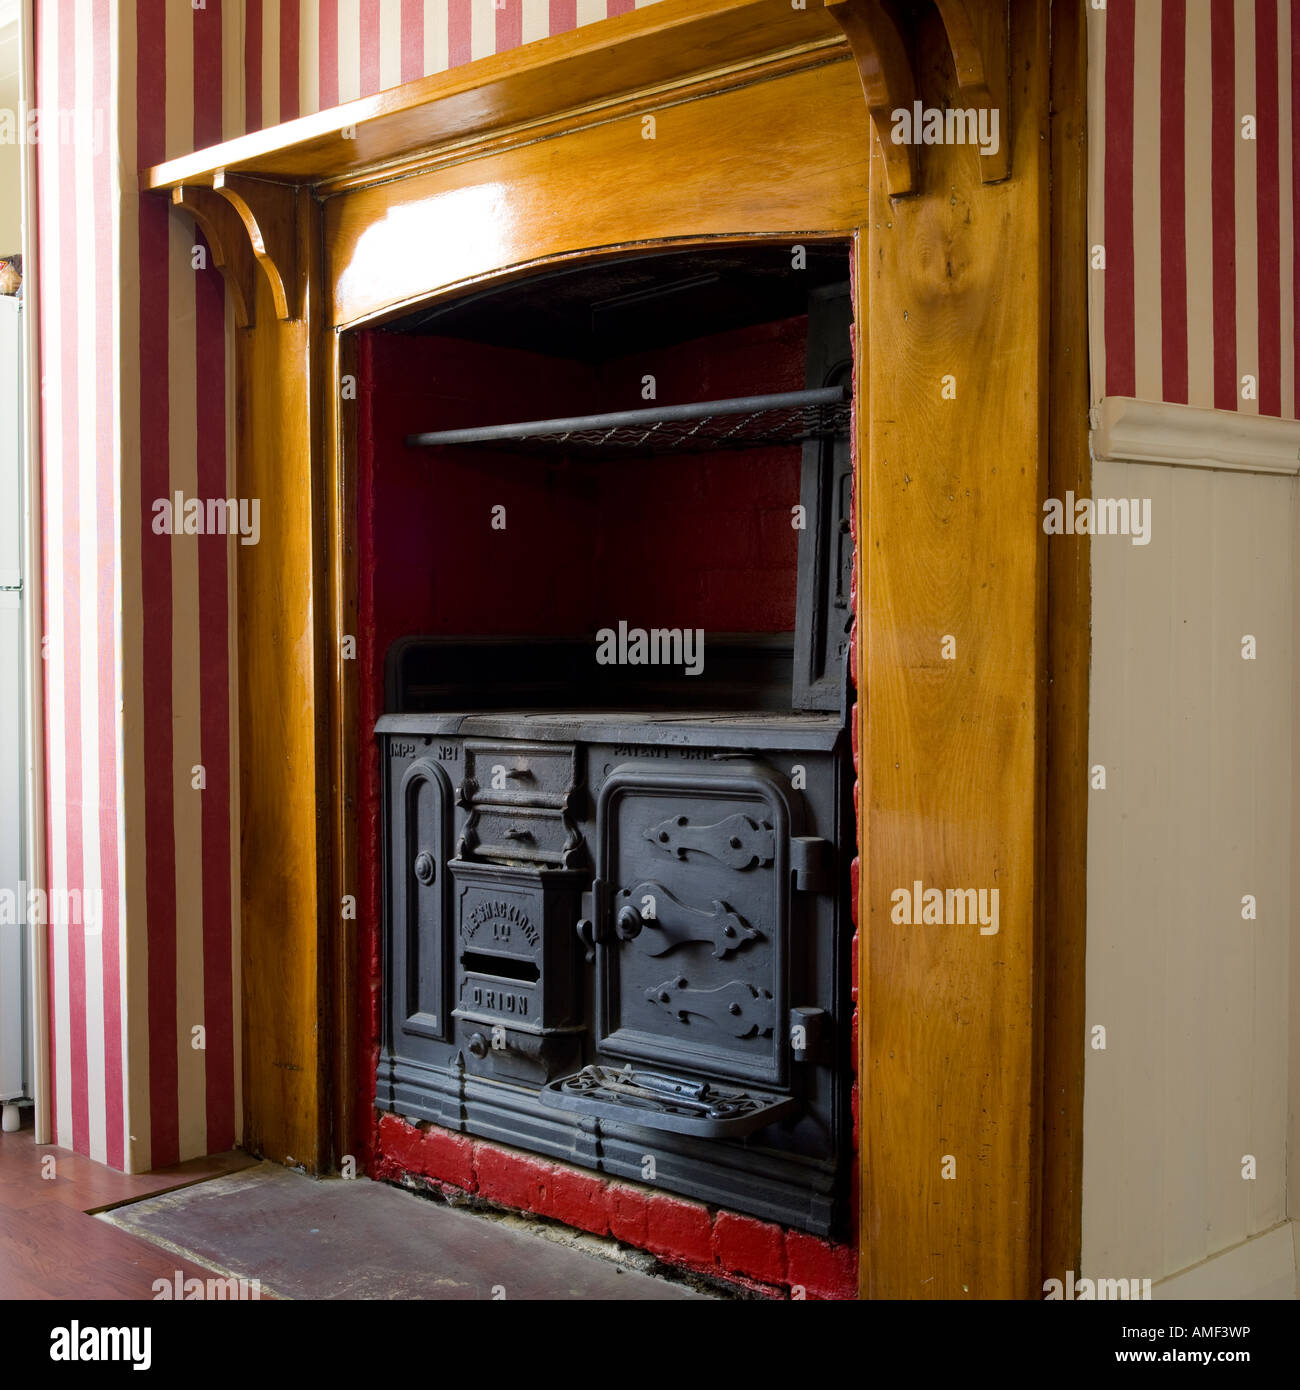 Old fire range in kitchen - Stock Image